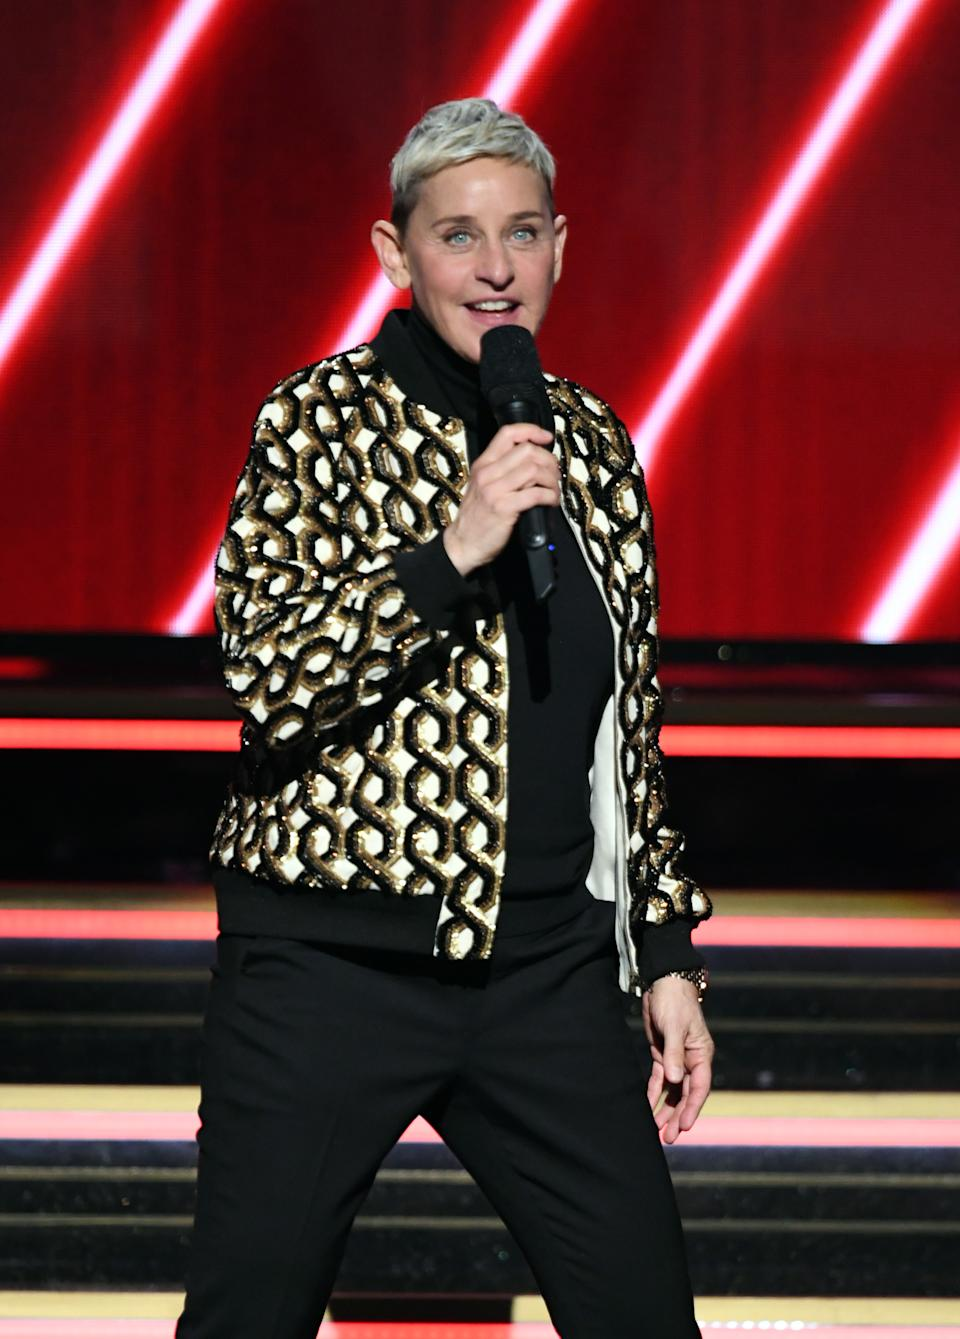 Ellen DeGeneres speaks onstage during the 62nd Annual GRAMMY Awards at STAPLES Center on January 26, 2020 in Los Angeles, California. (Photo by Kevin Winter/Getty Images for The Recording Academy )